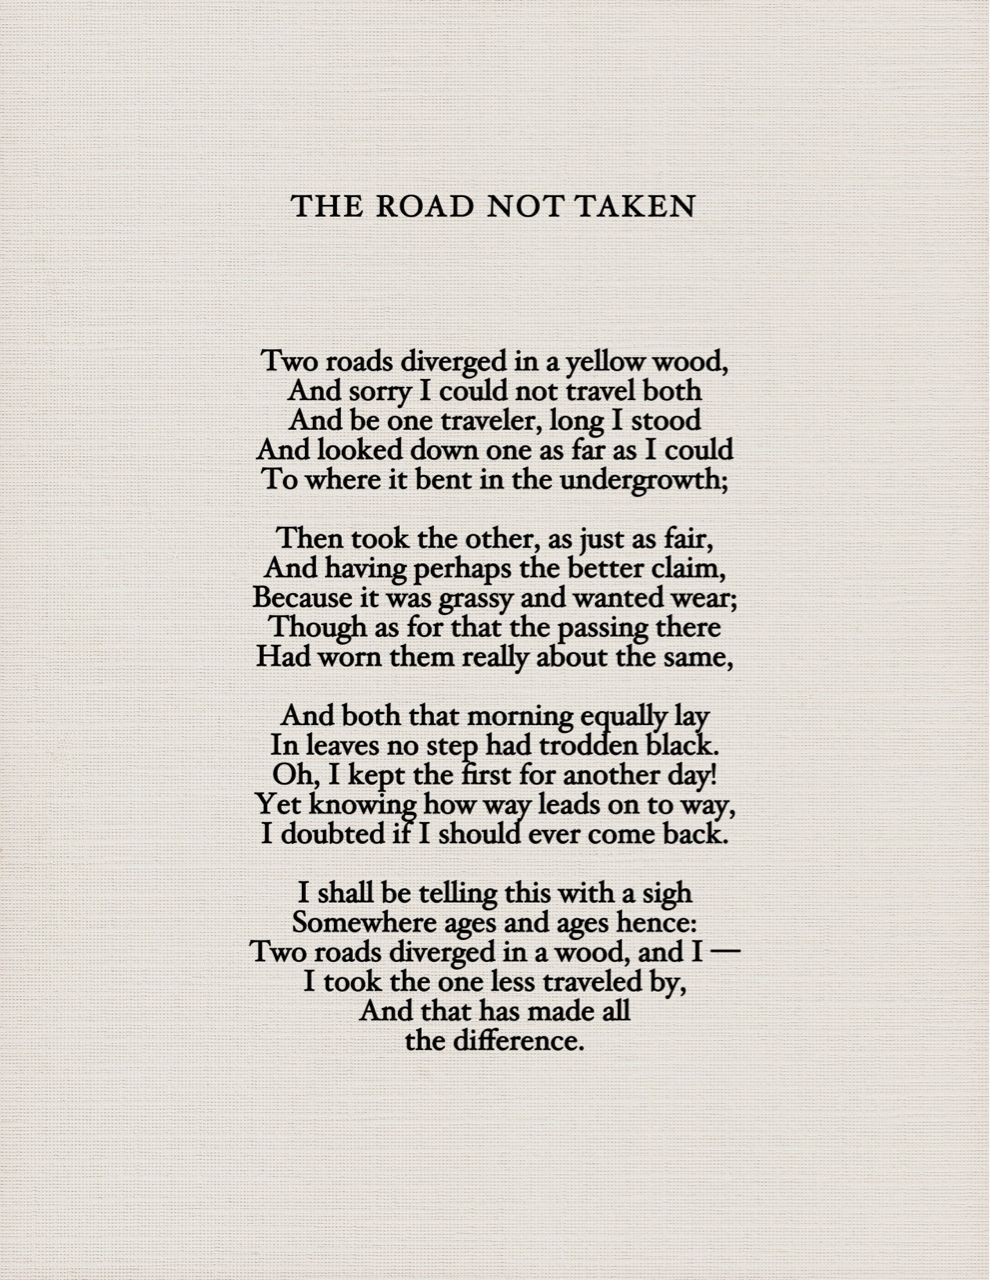 a road not taken analysis essay Text to analysis essay- the road not taken by robert frost posted on october 21, 2015 by ekrmaul haque the poem, the road not taken by robert frost states that in life we come upon many decisions, and there are points where we have to let fate take the lead.